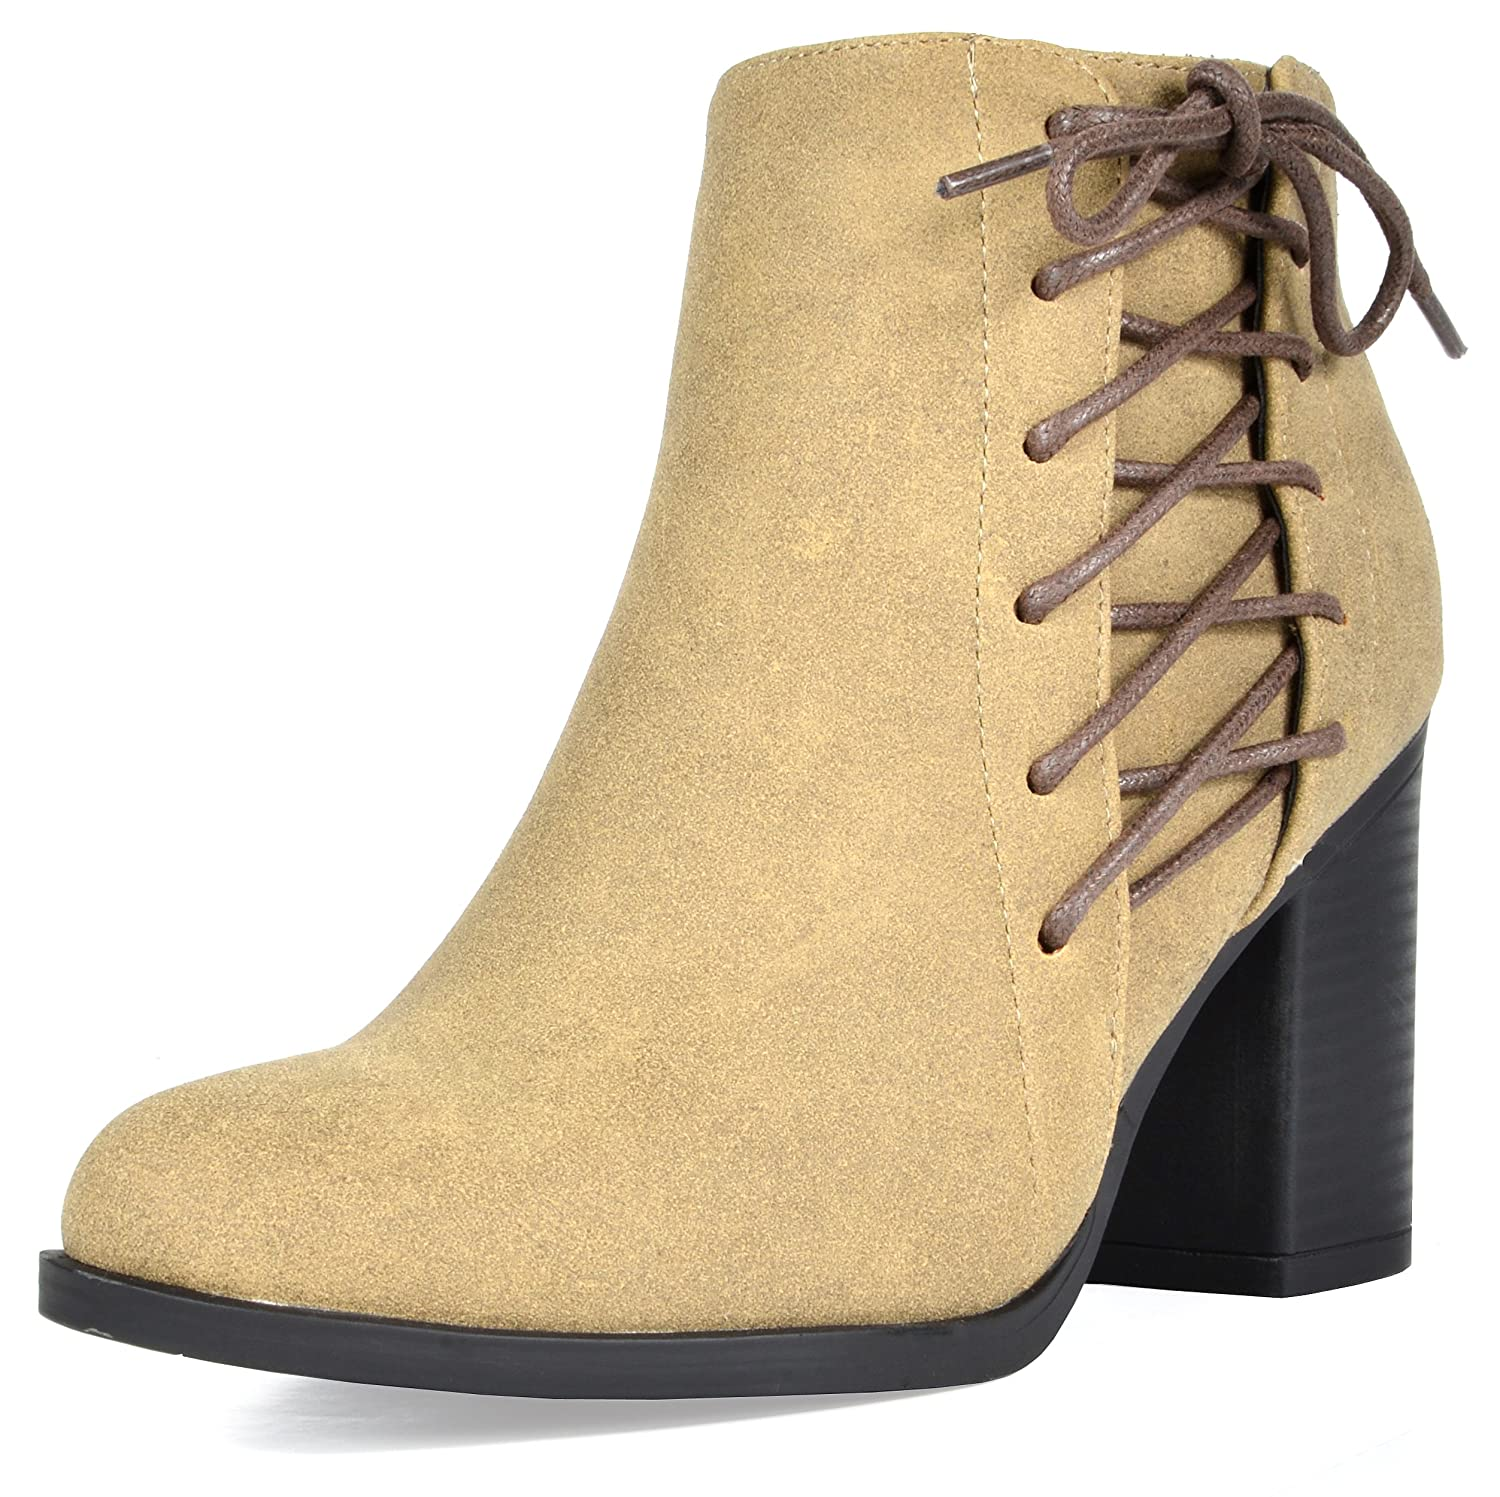 5f944a09b27 TOETOS Women's Chicago Chunky Heel Ankle Booties